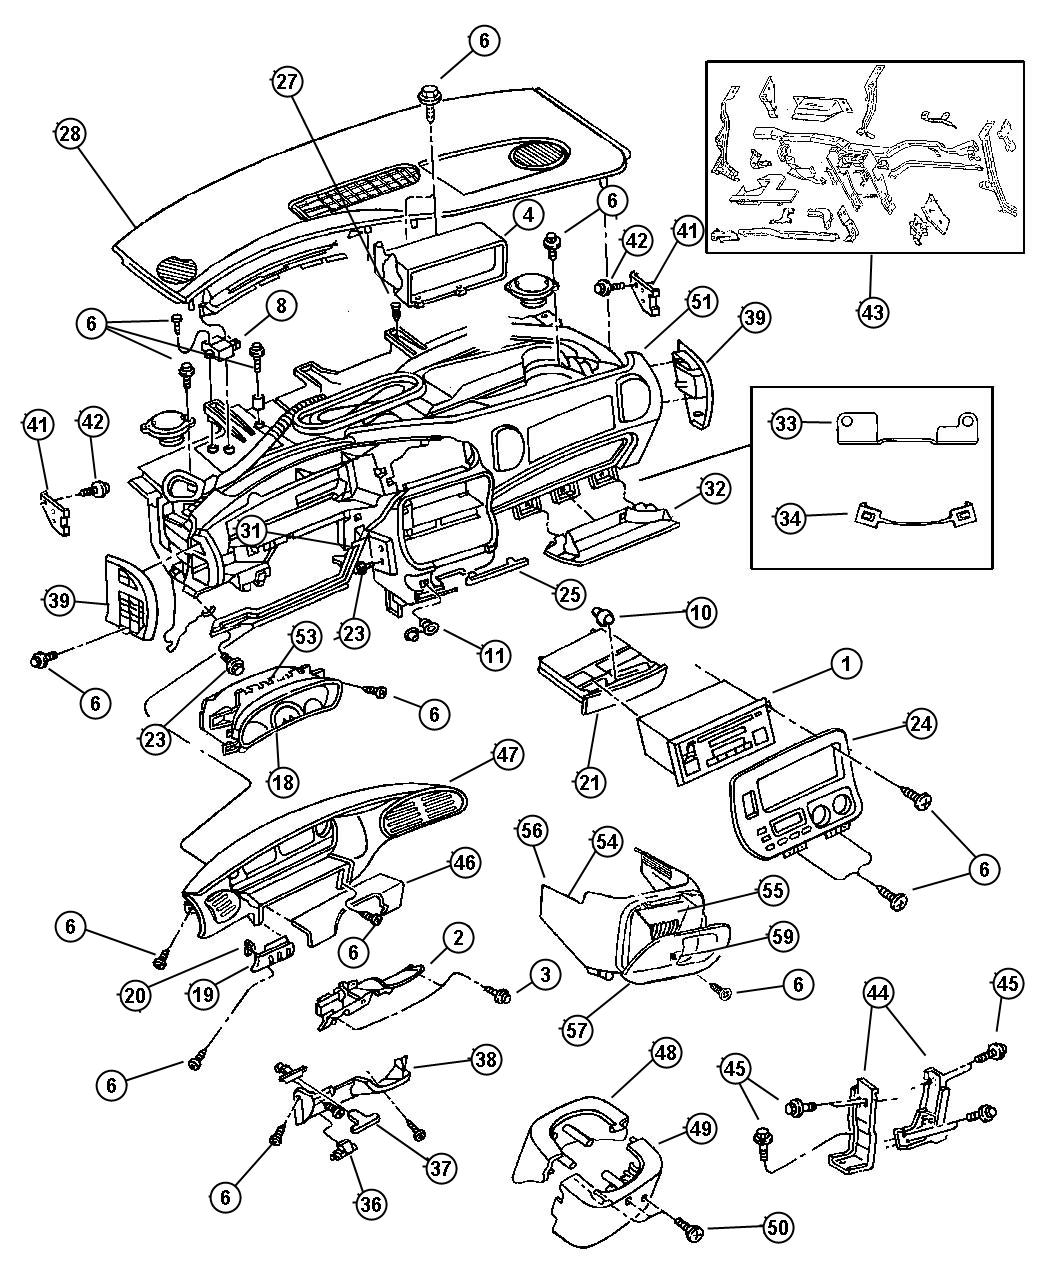 Radio Wire Diagram 2002 Chrysler Voyager Wiring Trusted Archive Of Automotive Vw Passat